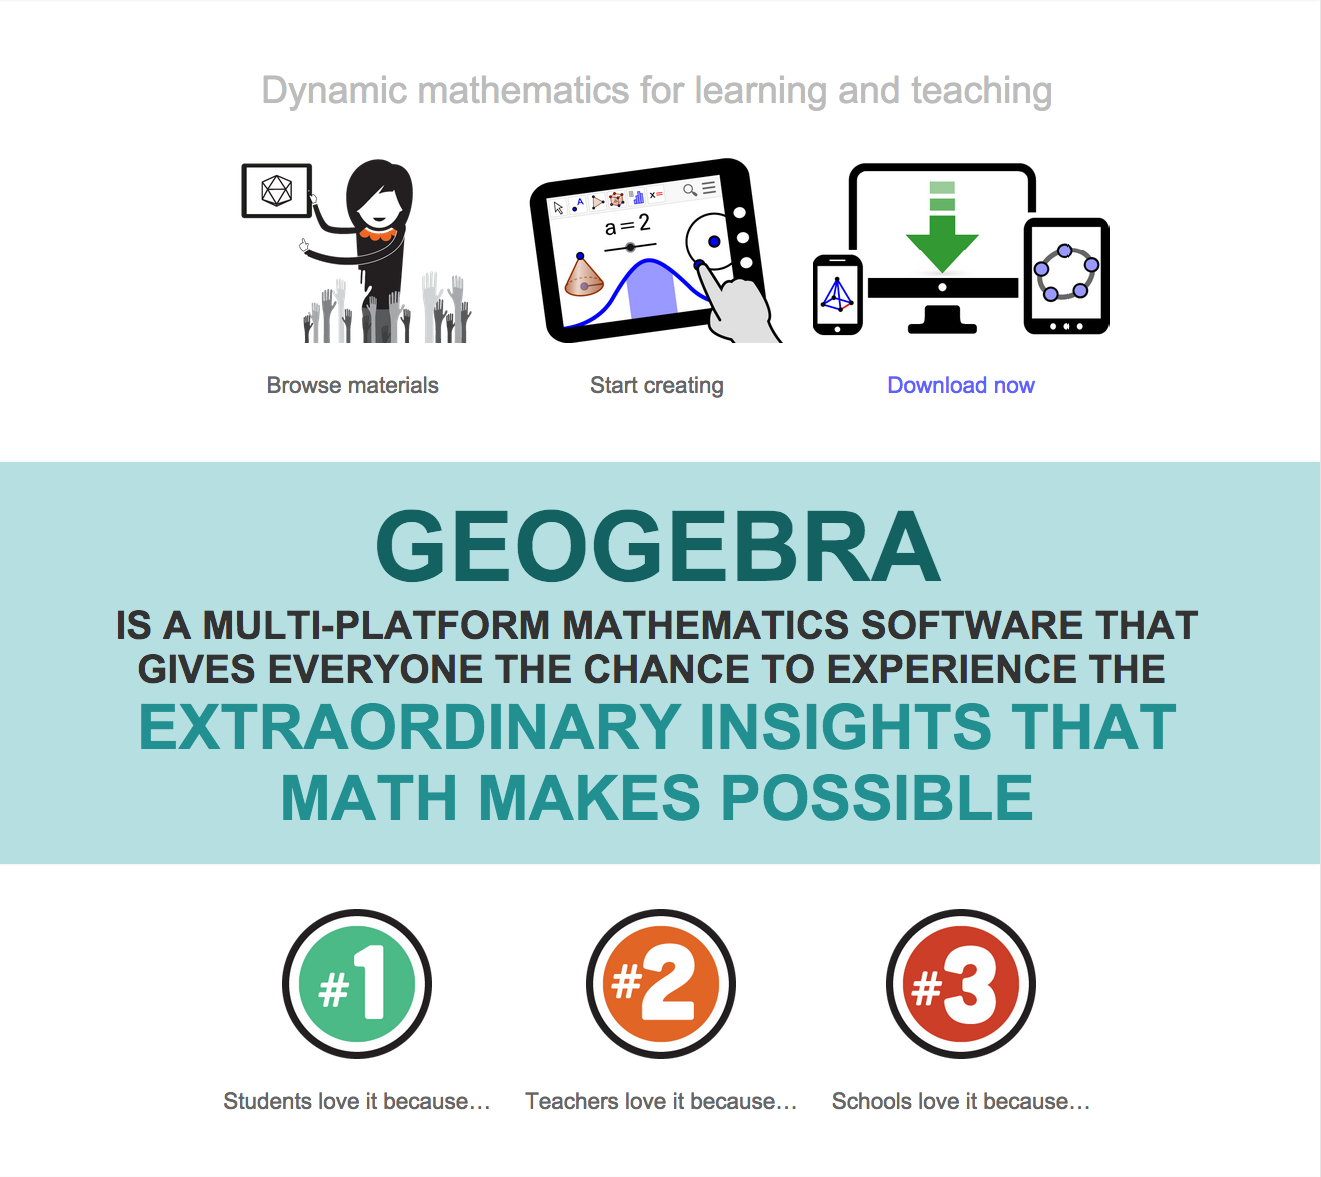 Mathematics - Open Educational Resources - LibGuides at University